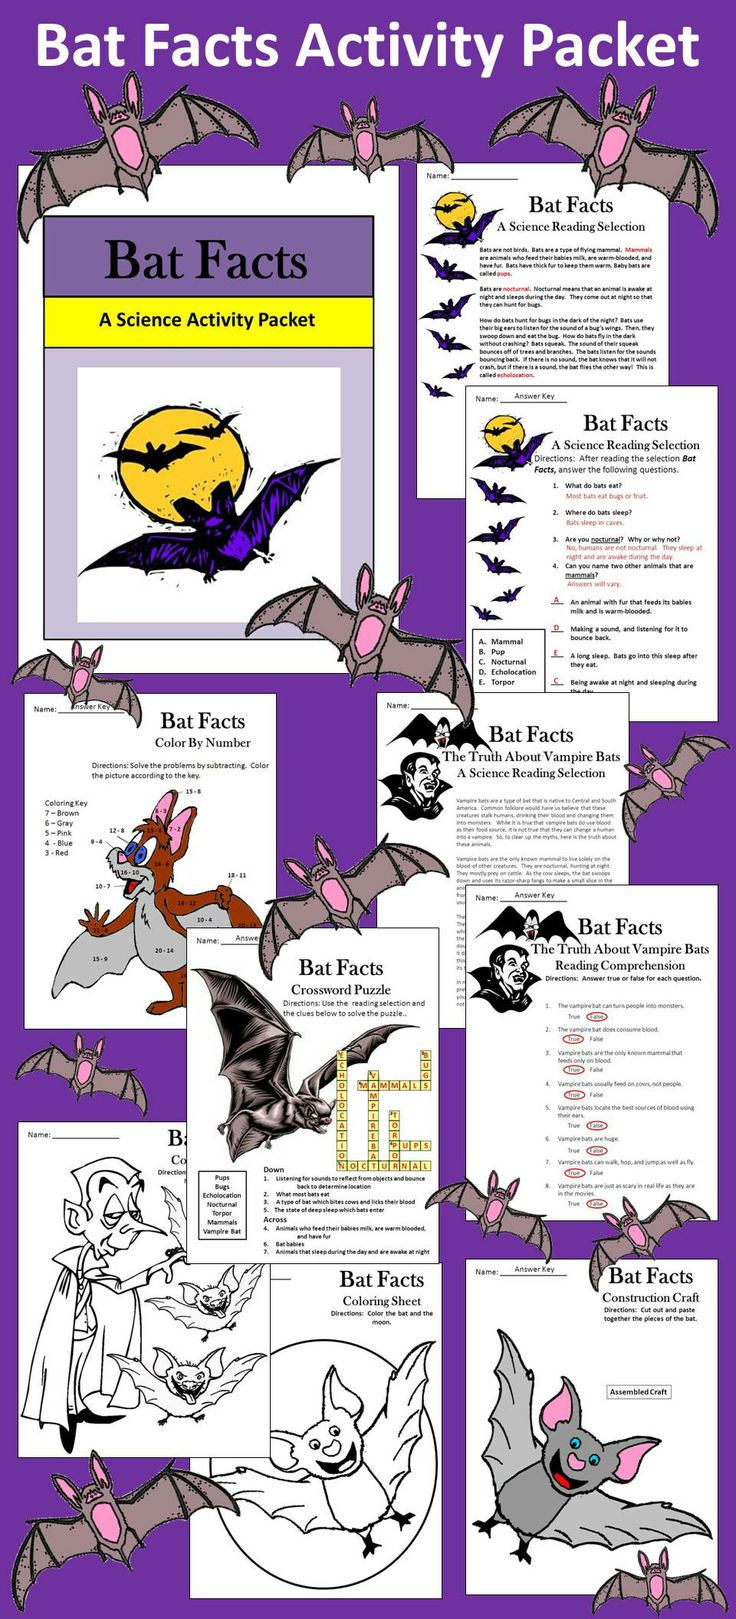 Bat Facts Activity Packet This is a colorful cross-curricular activity packet in which your students will learn all about bats. Contents include: * One reading selection on Bat Facts * One reading selection on The Truth about Vampire Bats * One reading comprehension quiz over Bat Facts * One true/false quiz over The Truth about Vampire Bats * One crossword puzzle over bat vocabulary * One bat math subtraction coloring sheet * One bat construction craft * Two coloring sheets * Answer keys